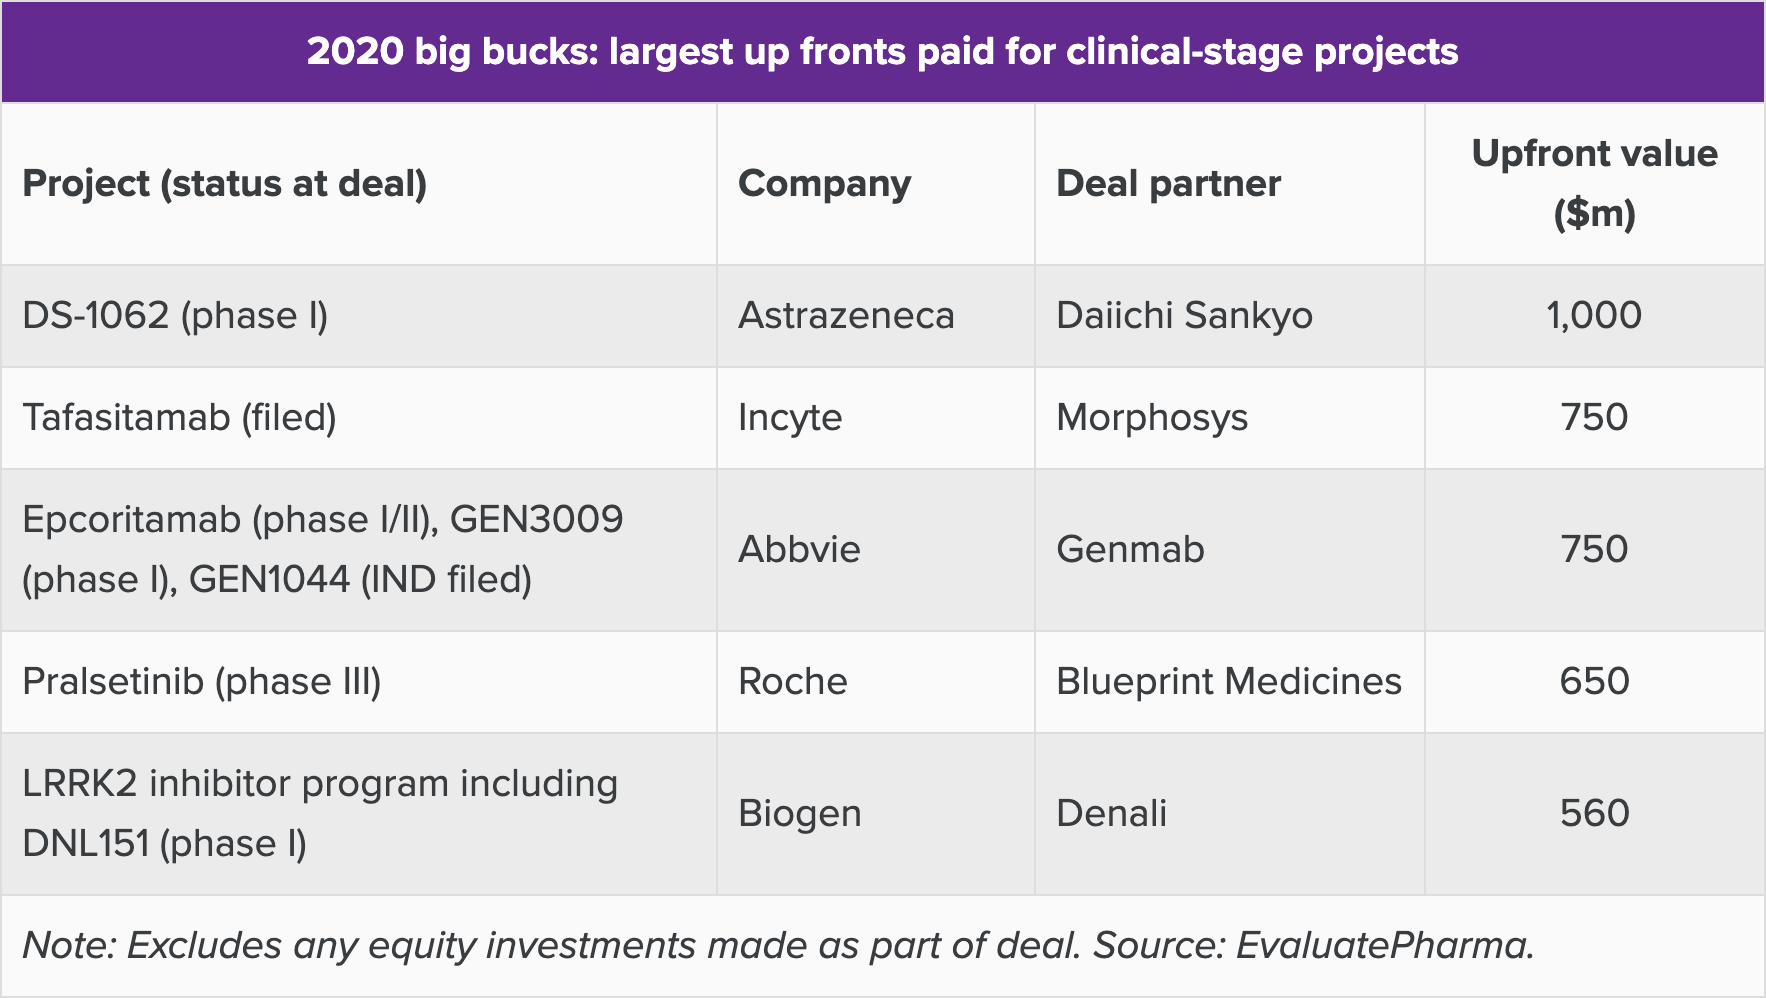 2020 big bucks largest up fronts paid for clinical stage projects - Denali и Biogen: уникальный подход к лечению болезни Паркинсона